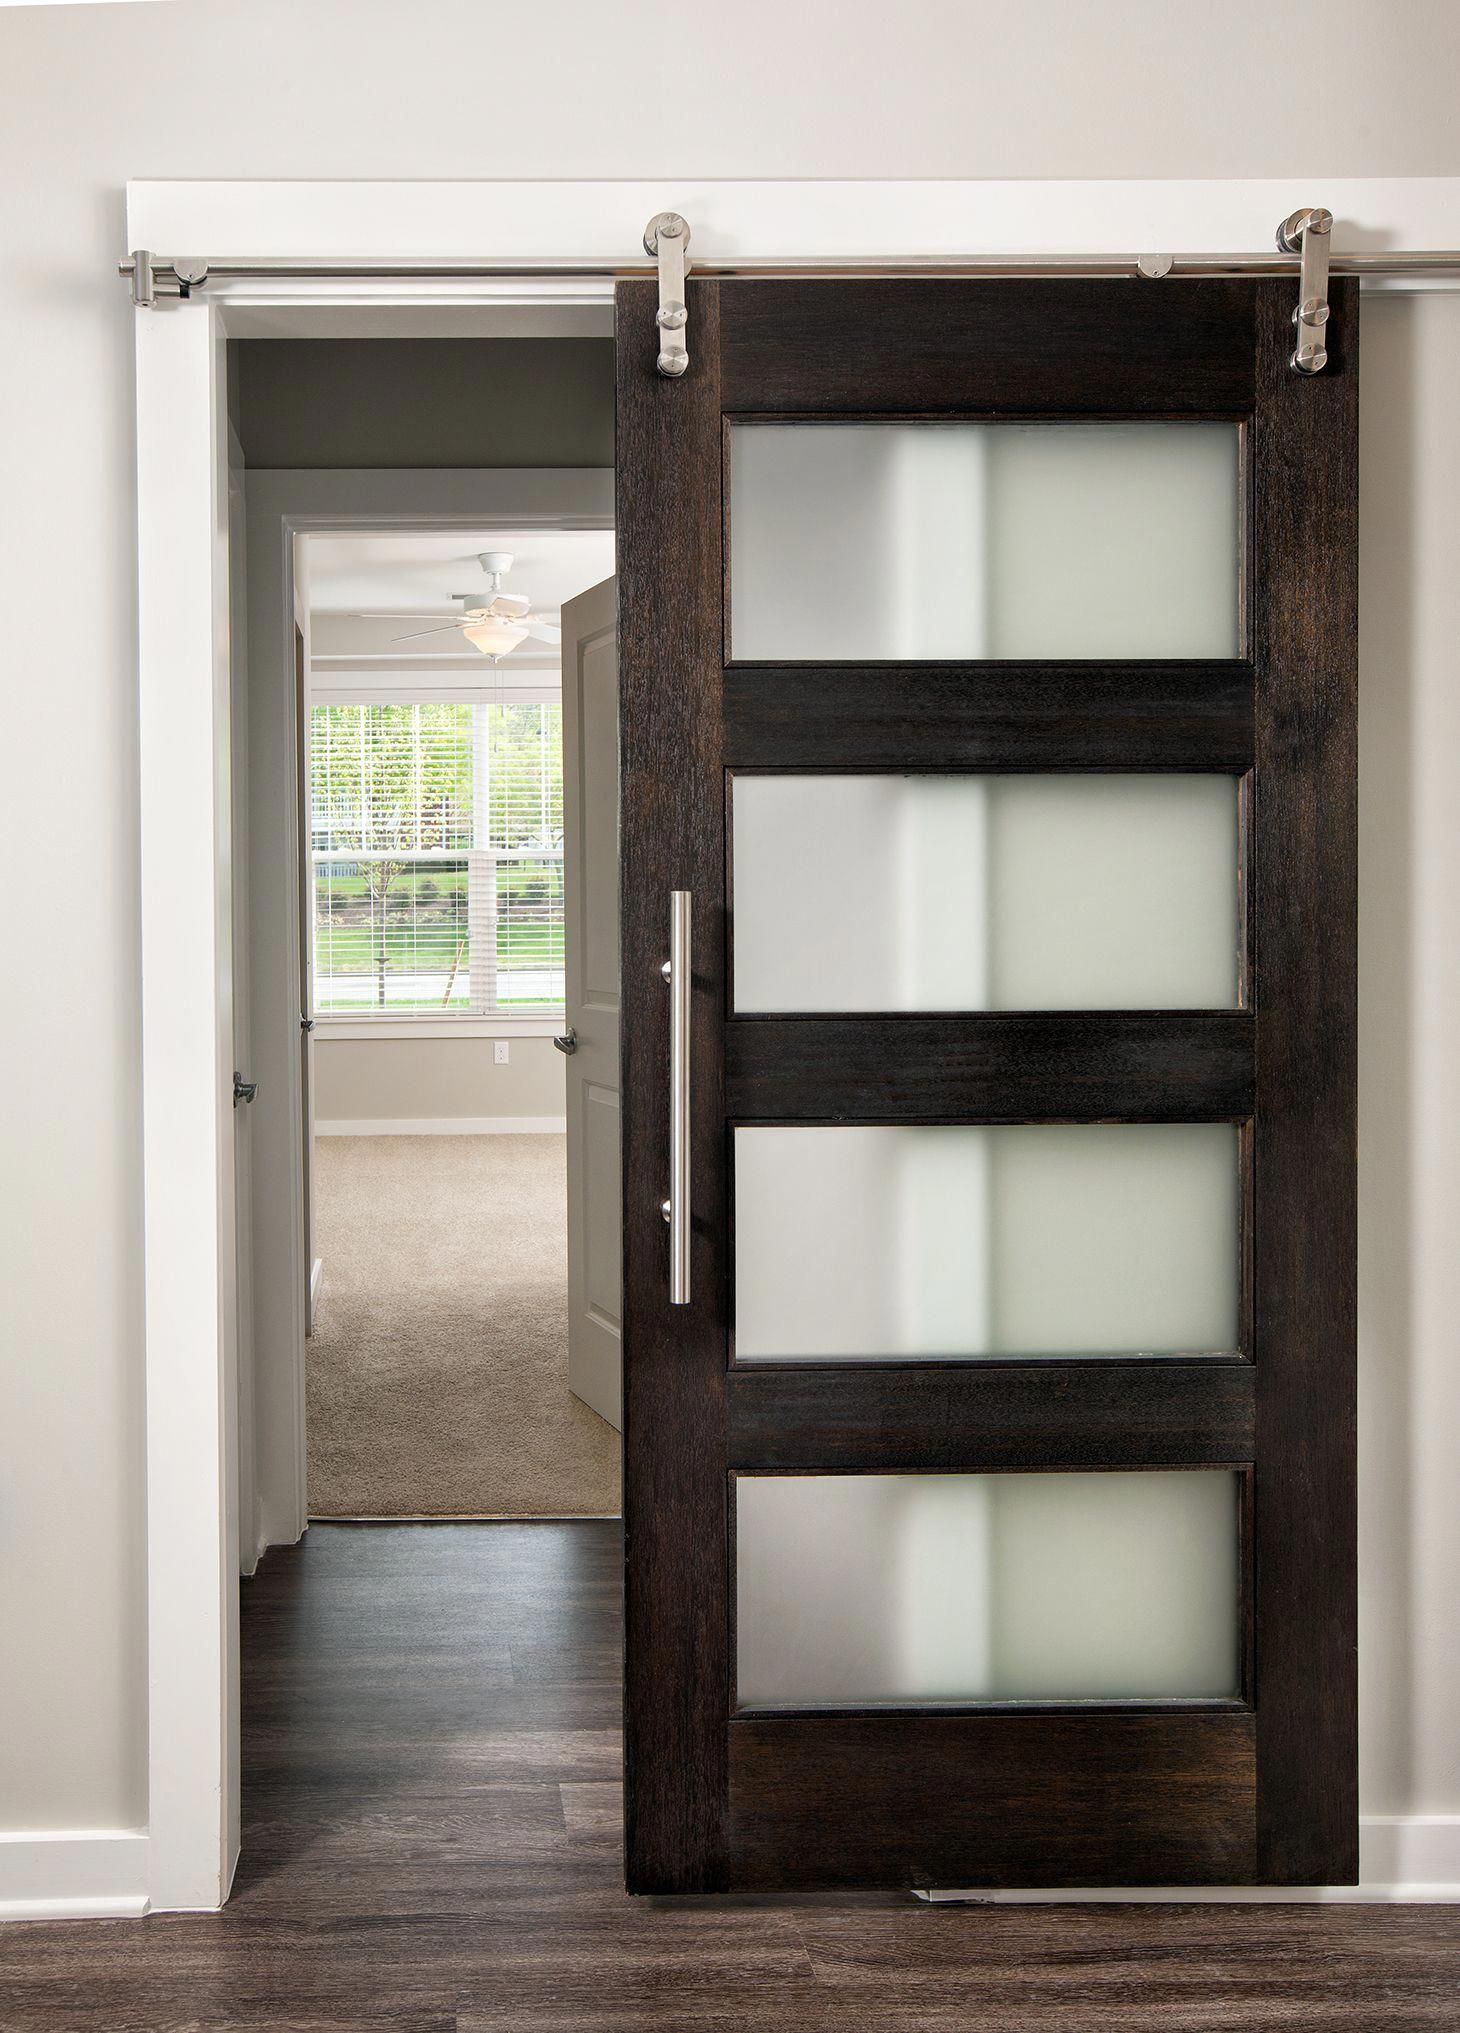 awc glass barn door opaque on modern style barn door with frosted glass mahogany interiorbarndoordiy doors interior modern interior barn doors sliding doors interior interior barn doors sliding doors interior